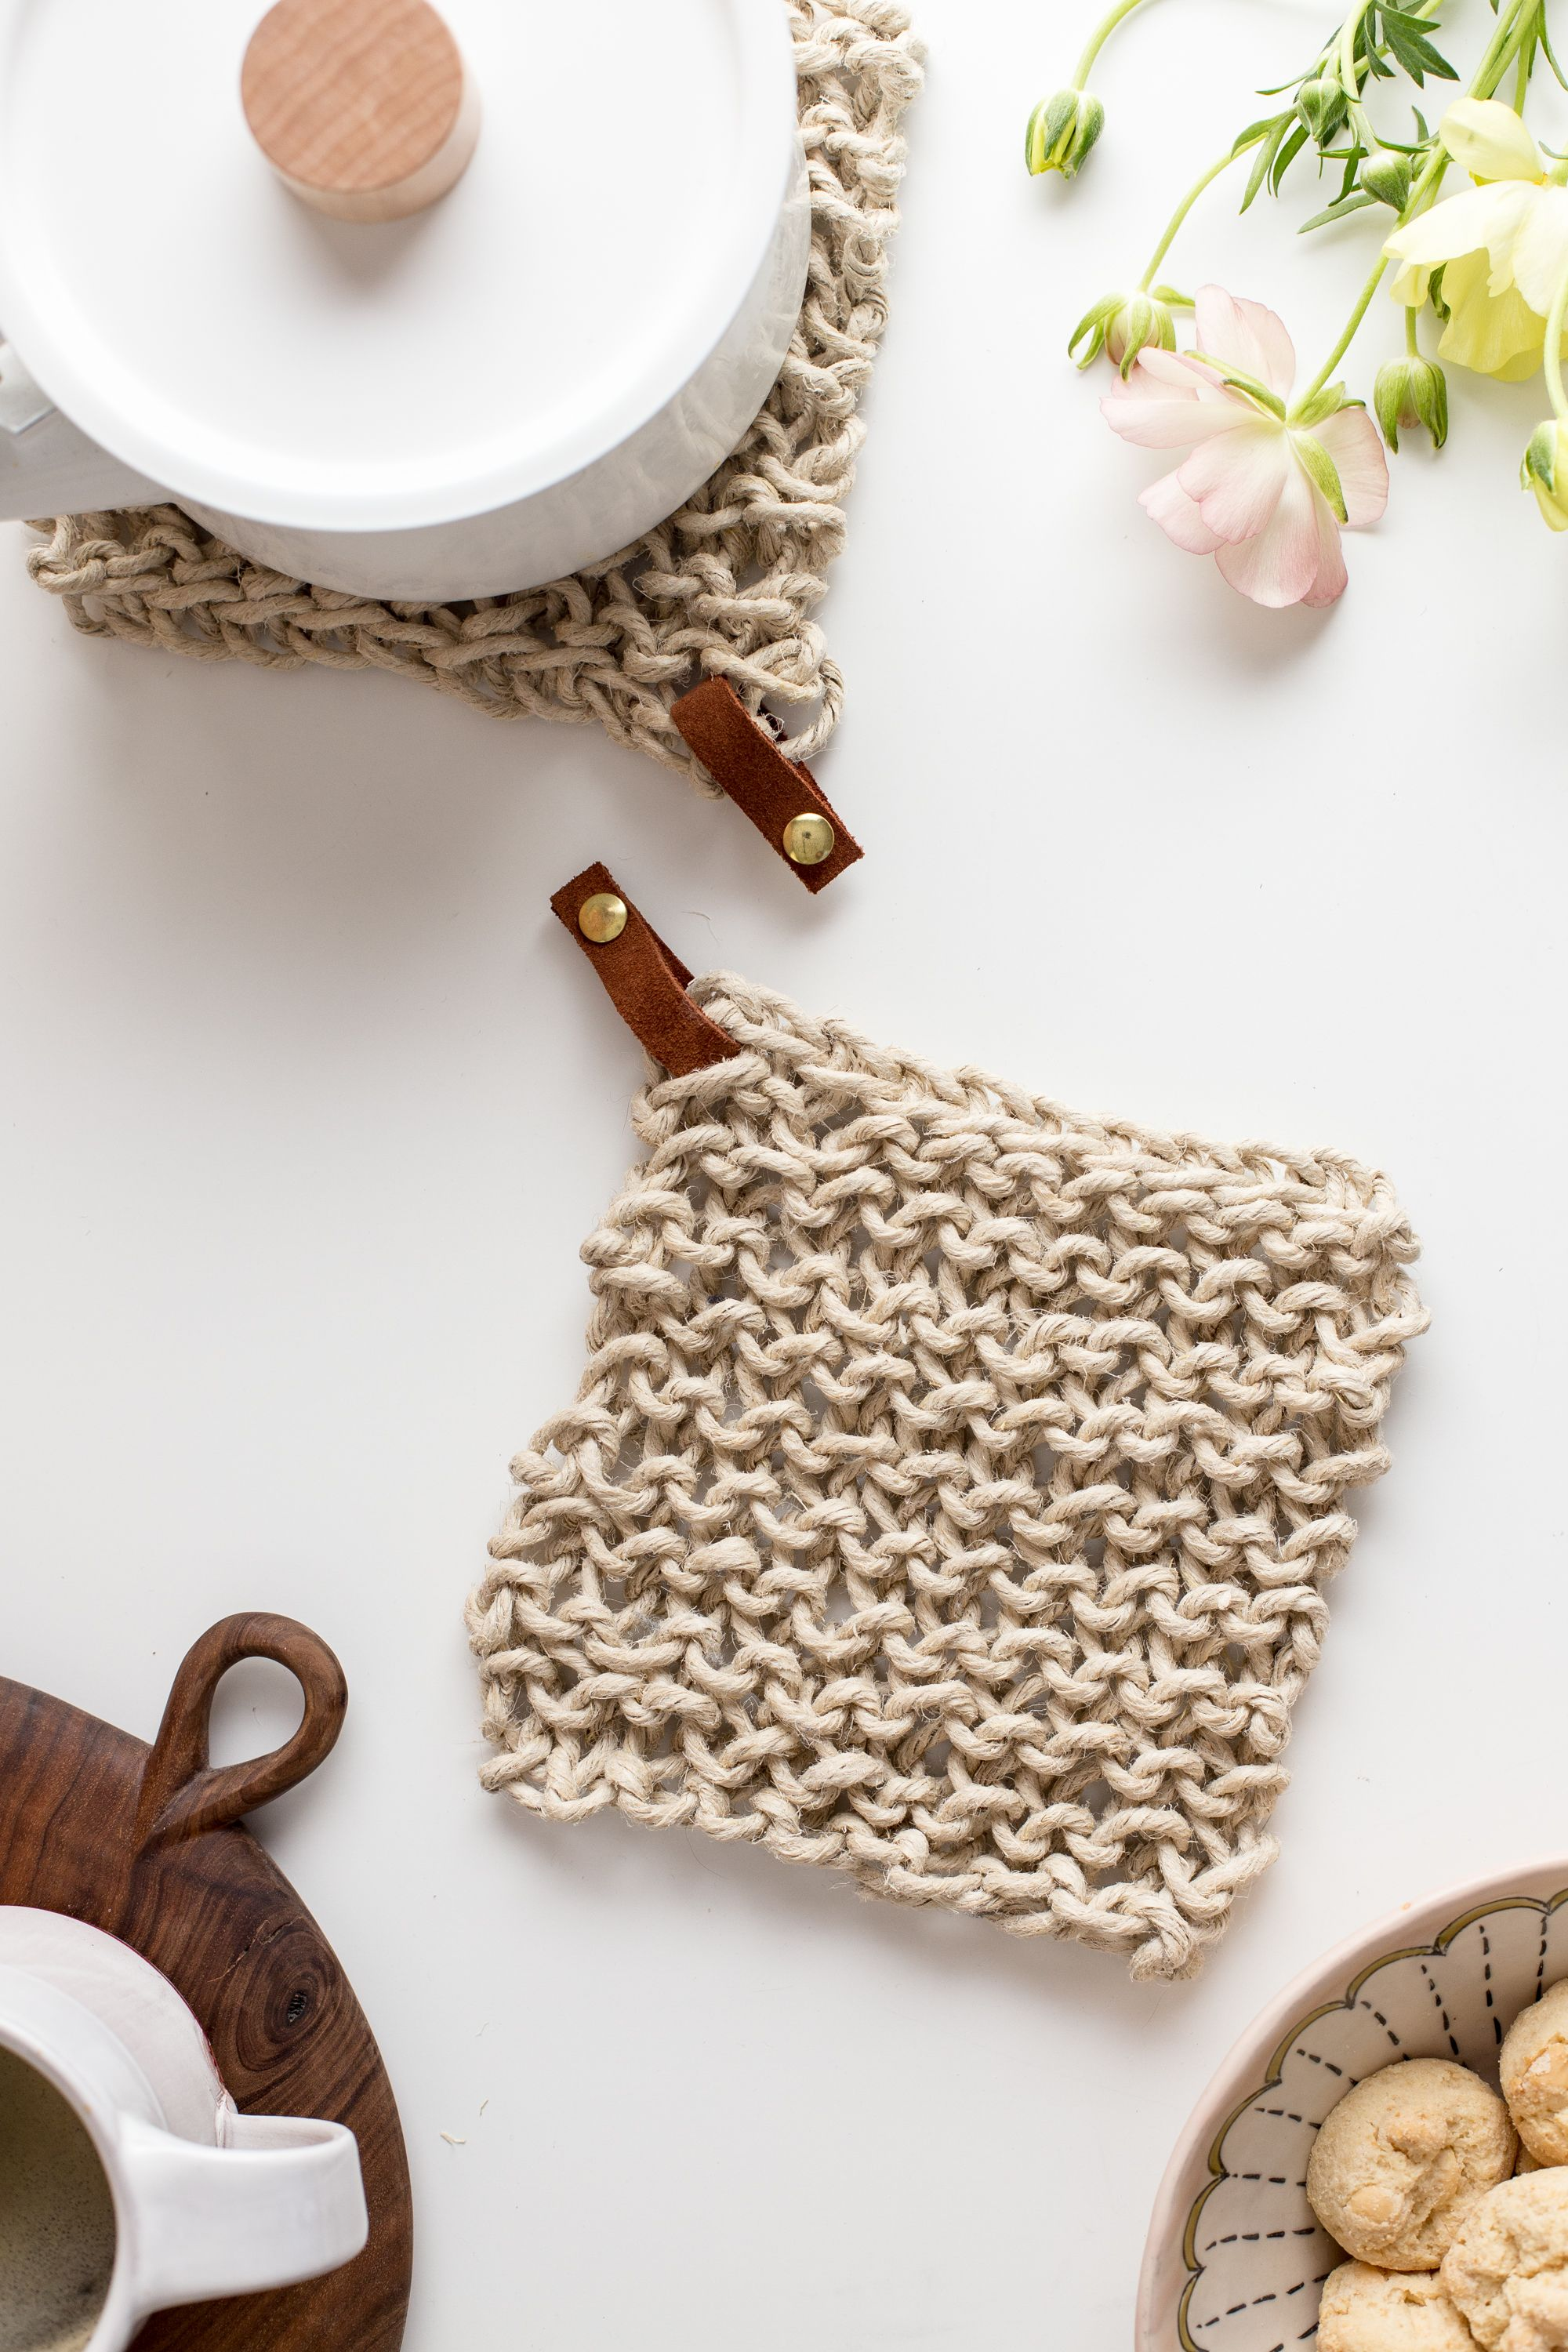 Knit Twine Potholder Pattern with Leather | Potholder patterns ...